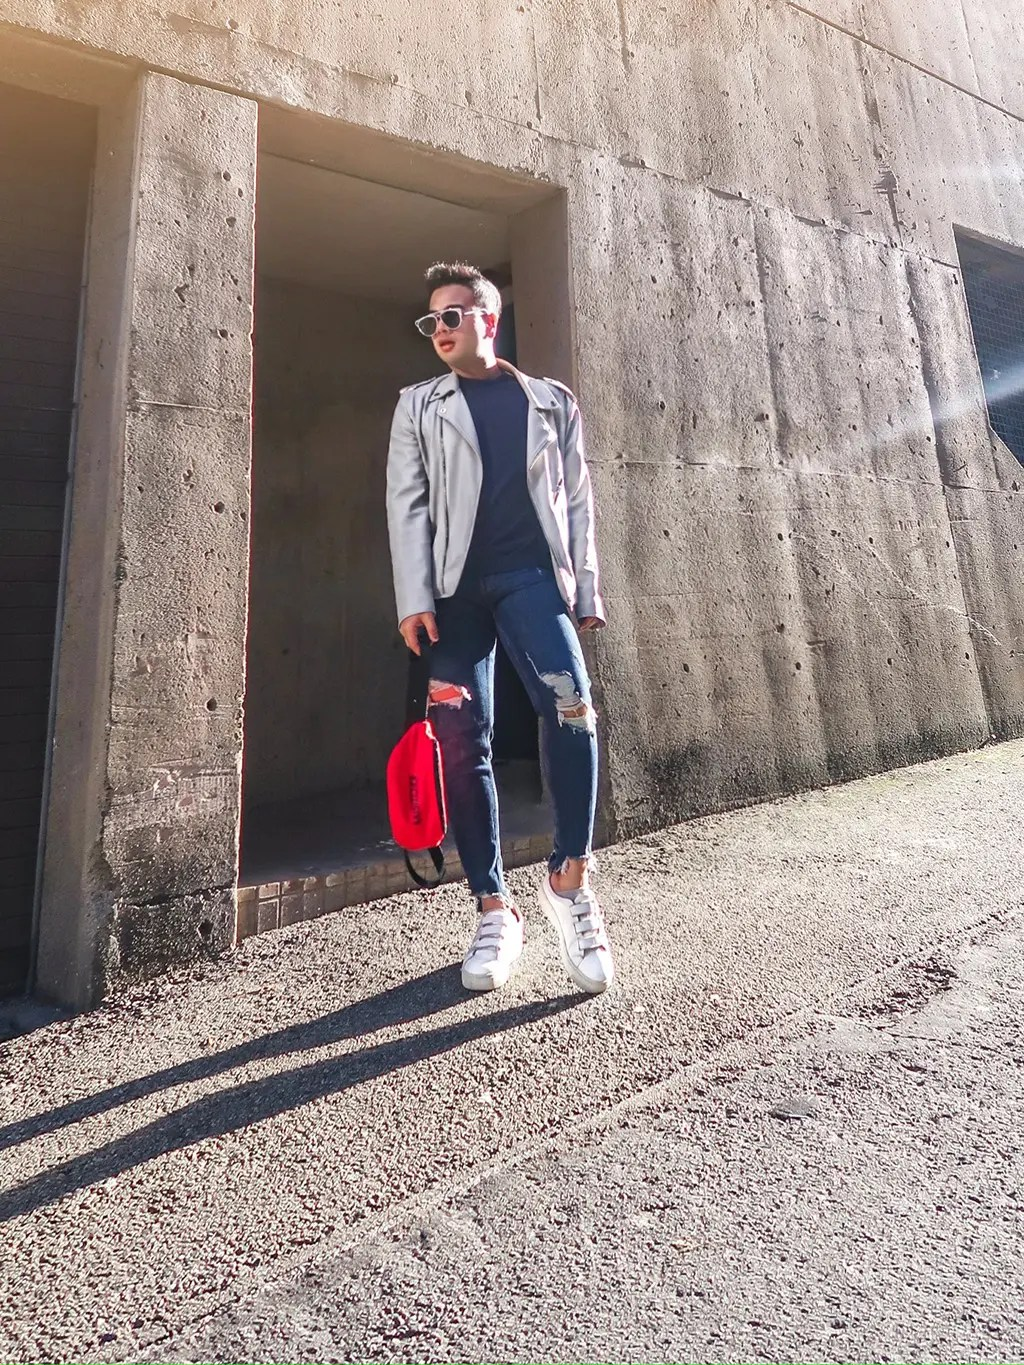 Best Vancover Streetstyle Canada Travel Fashion-Outfits for Men-Top Male Bloggers Canada Vancouver Toronto